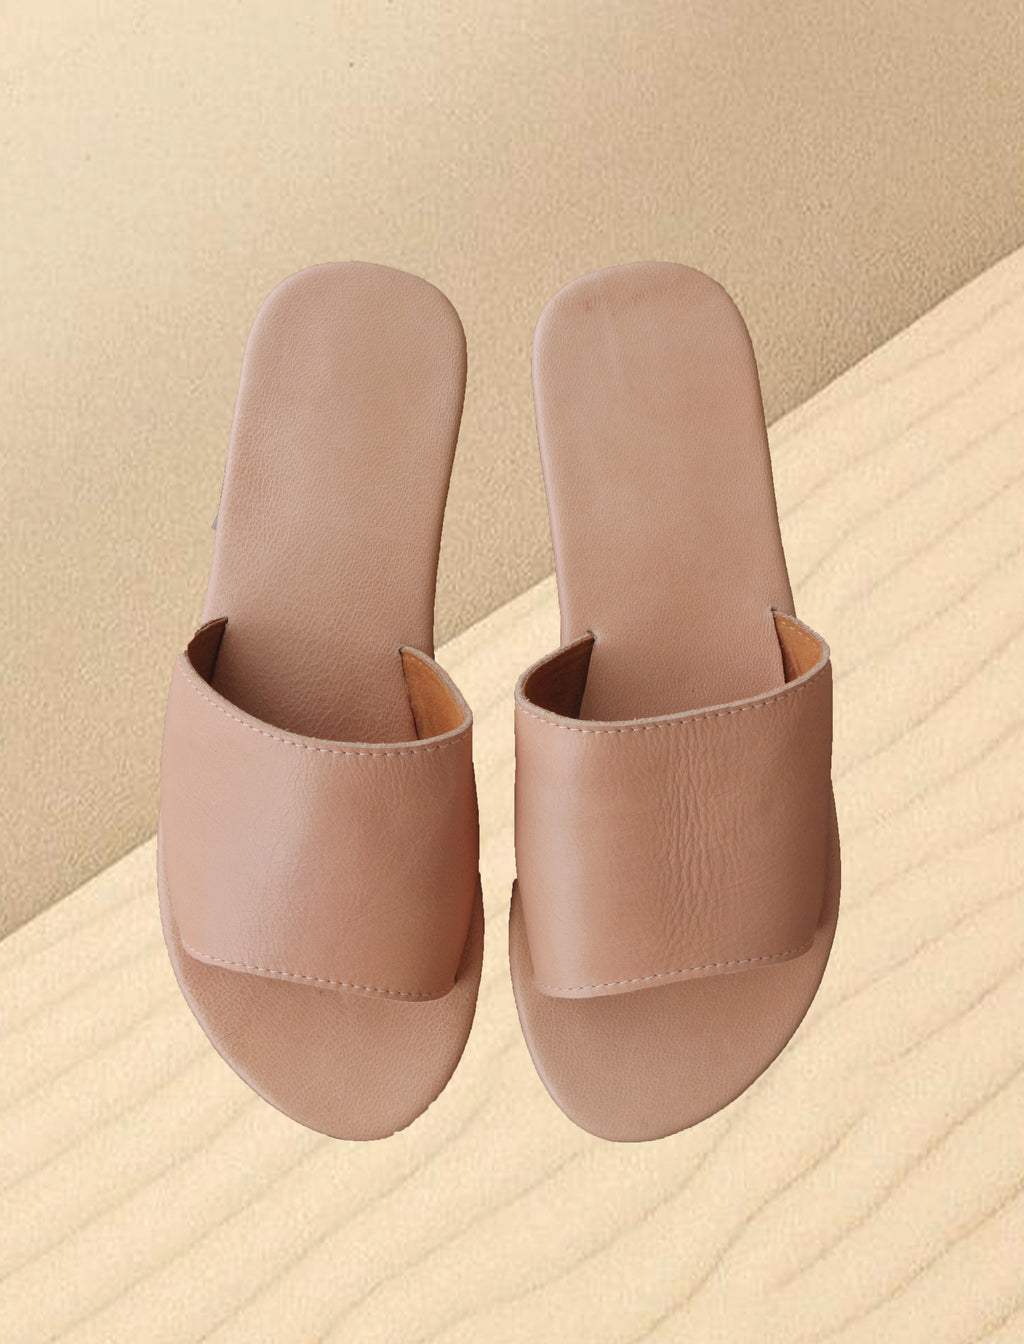 Bay Leather Slides - Iguana